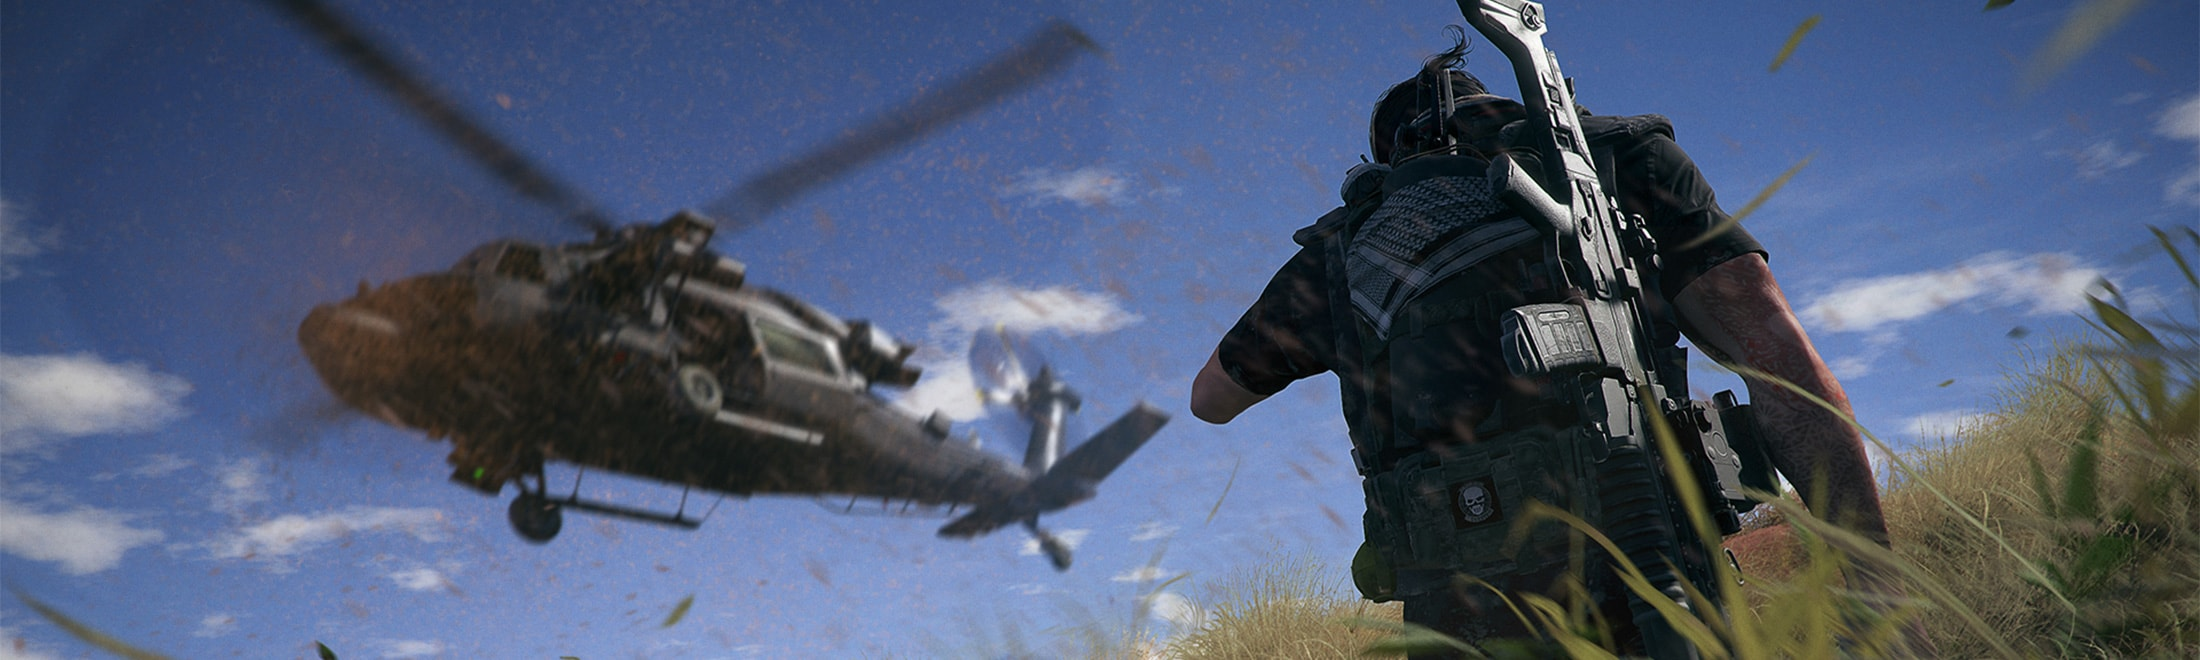 Get to know the ghosts in a new novel ghost recon wildlands news updates ubisoft us - Weaver ghost recon ...